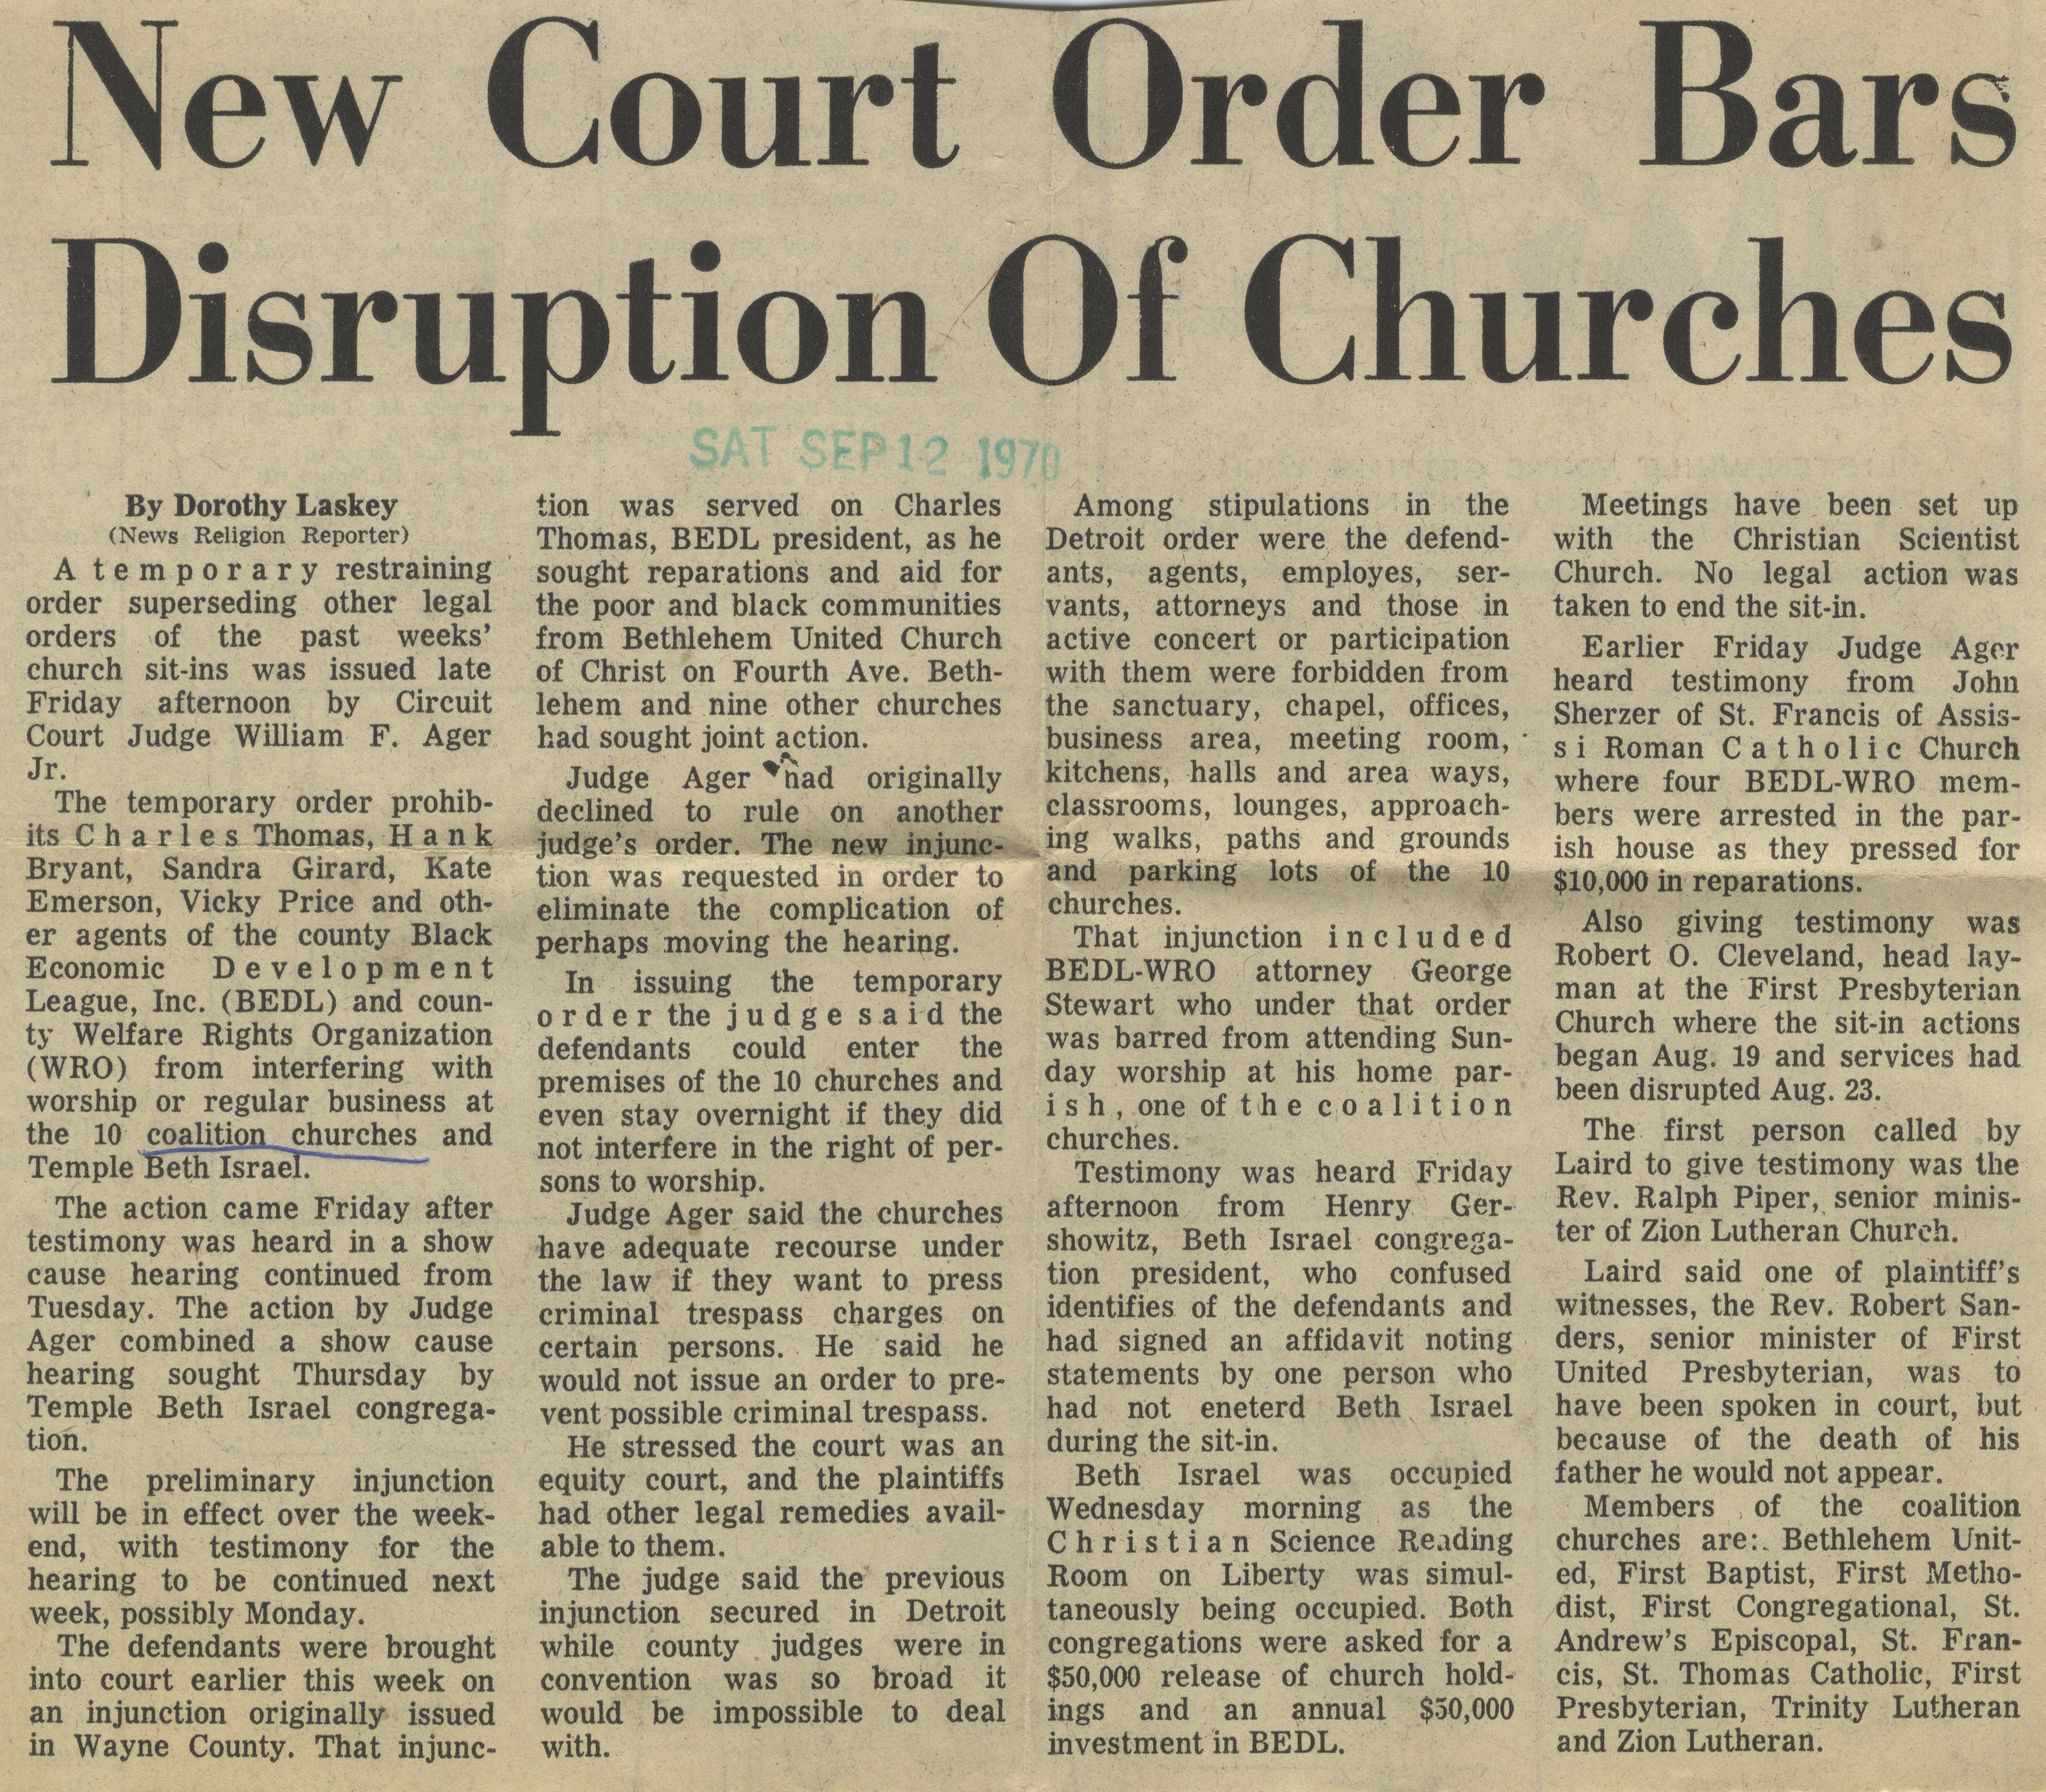 New Court Order Bars Disruption Of Churches image